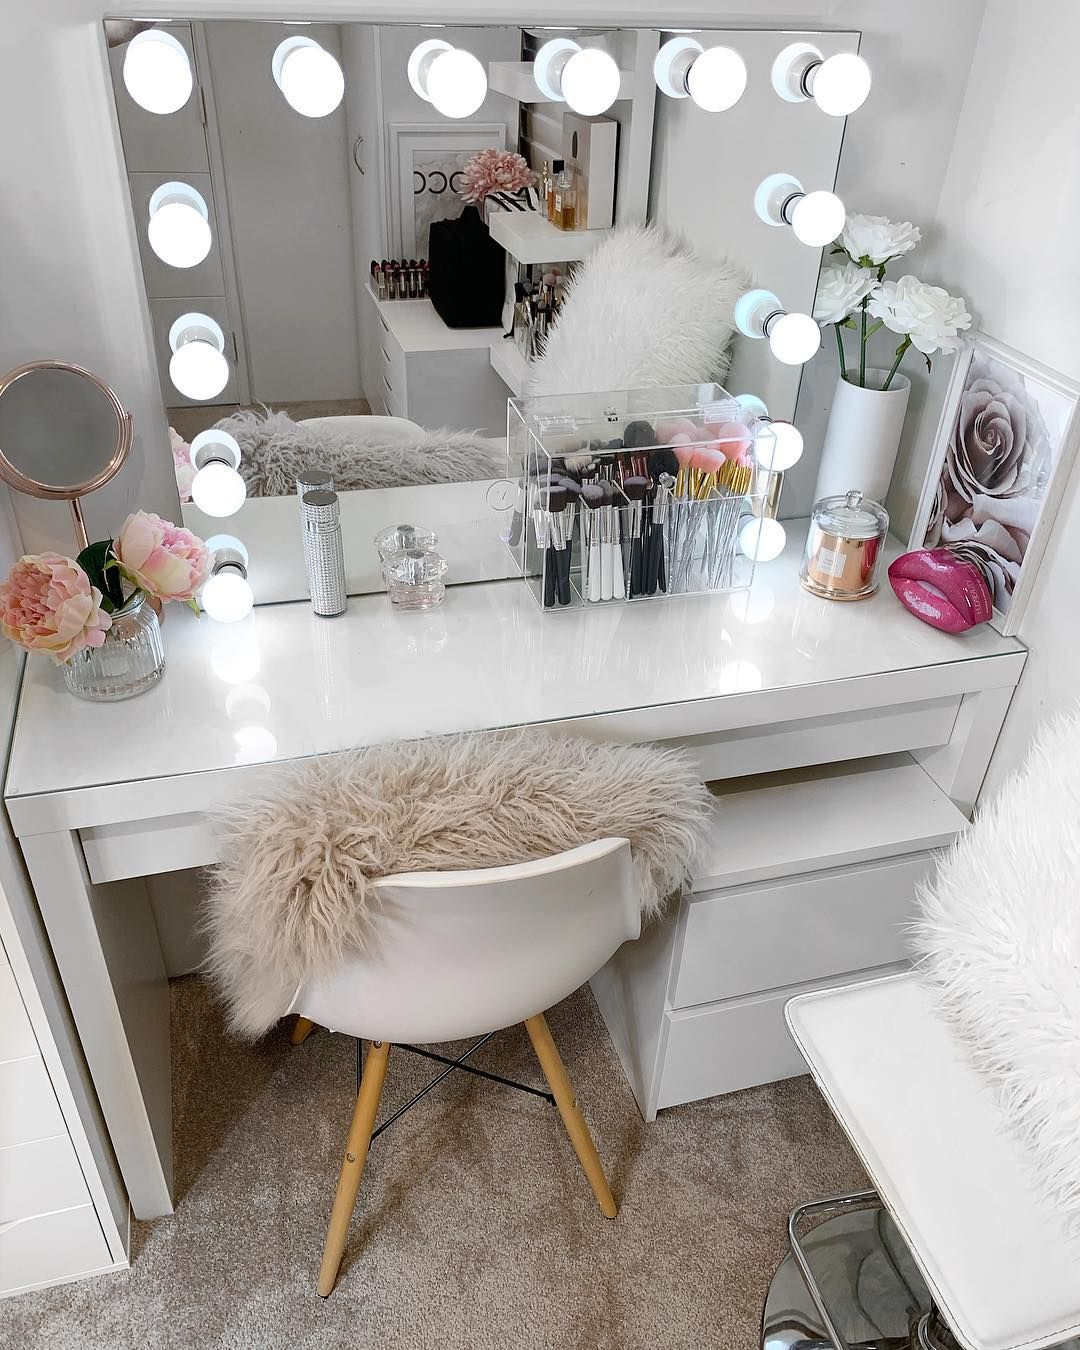 Pin by Kang Mari on Vanity Collections Products  Room ideas